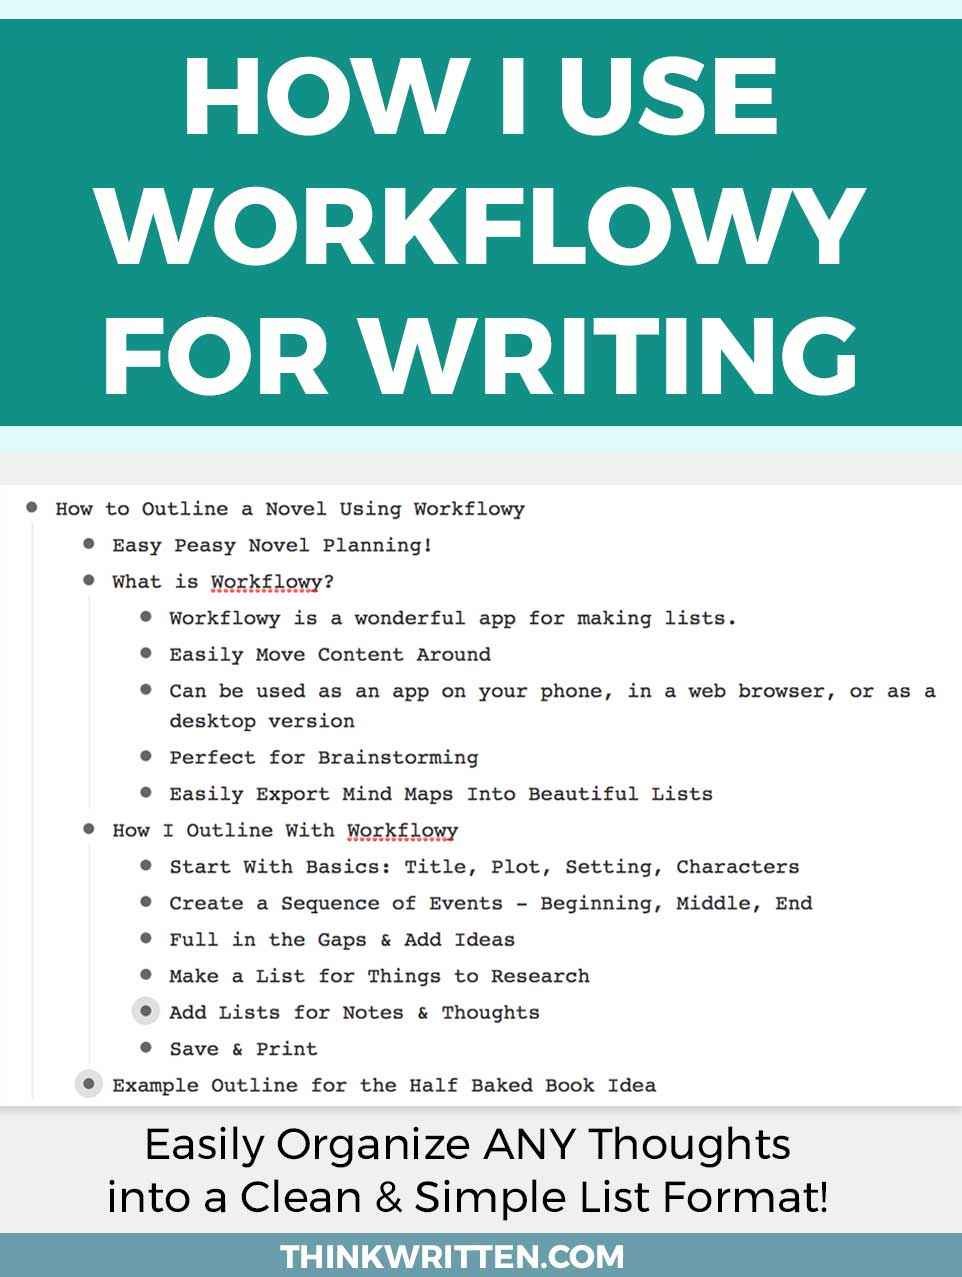 How To Use Workflowy For Writing